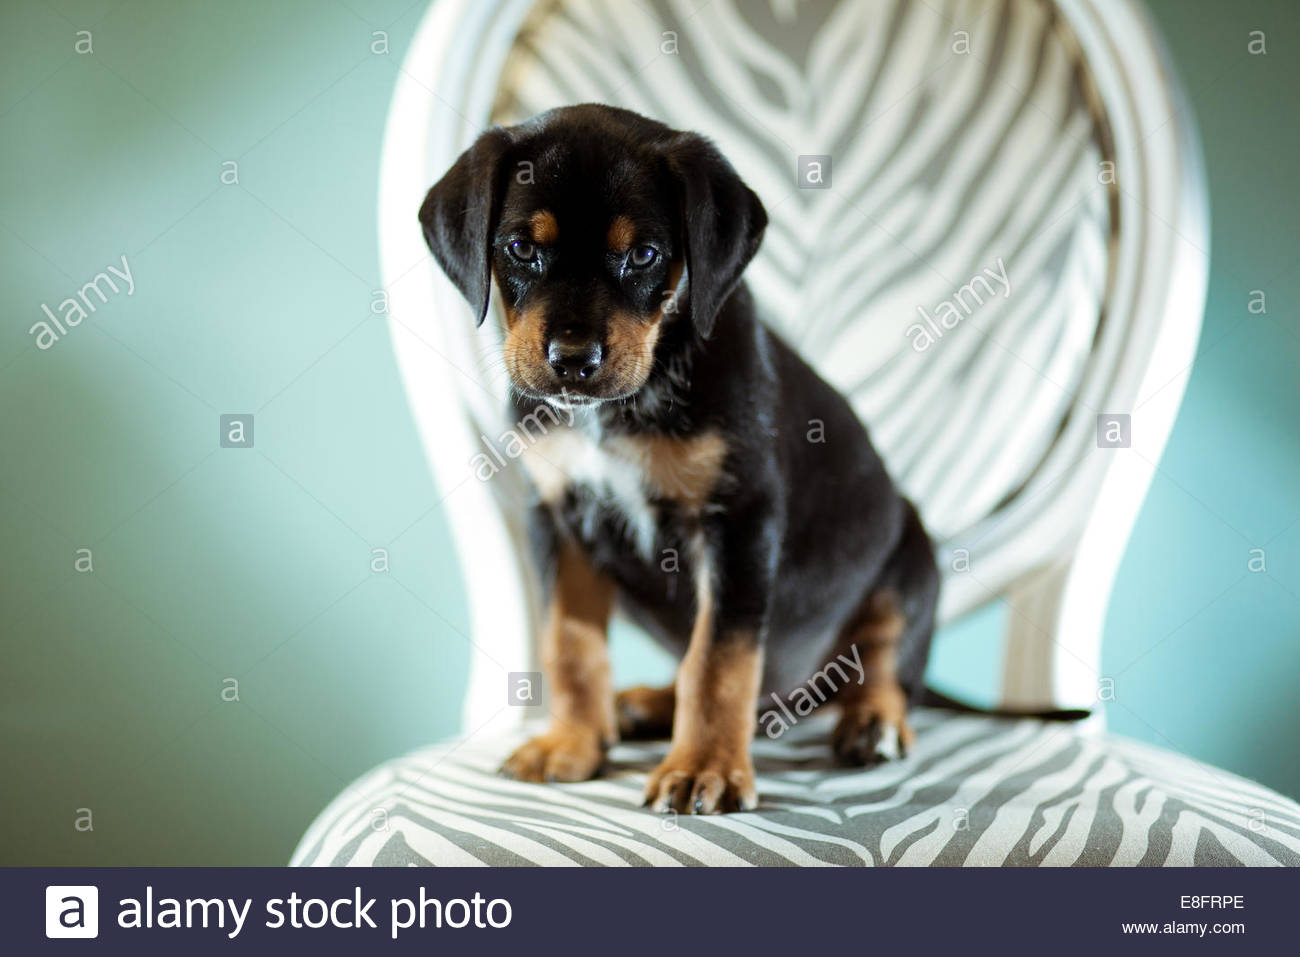 Puppy dog sitting on chair - Stock Image